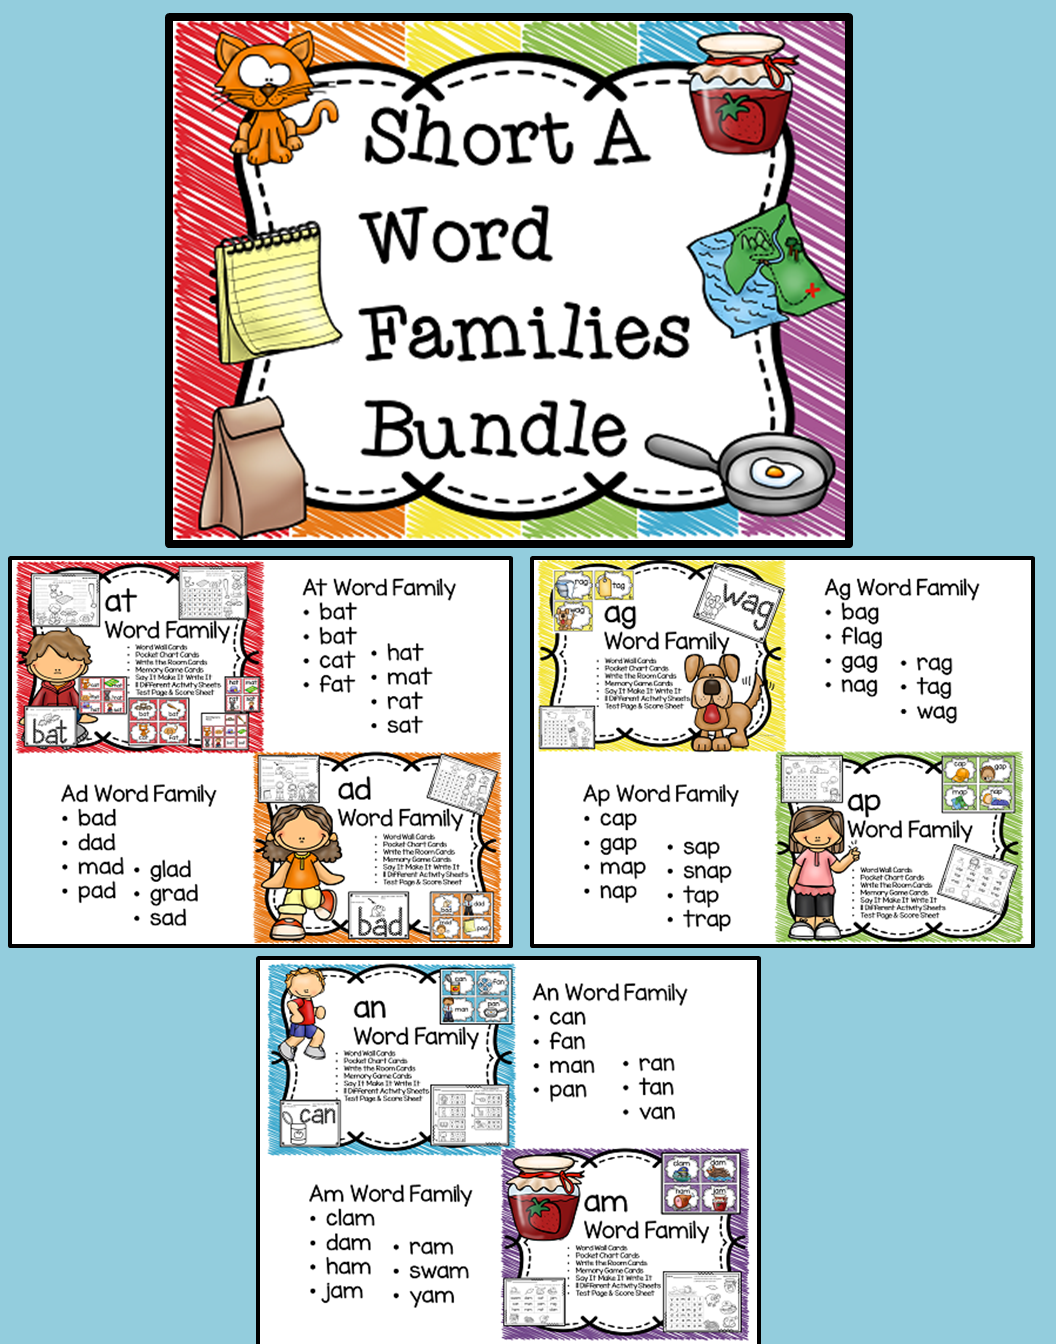 Short A Word Families Bundle With Images